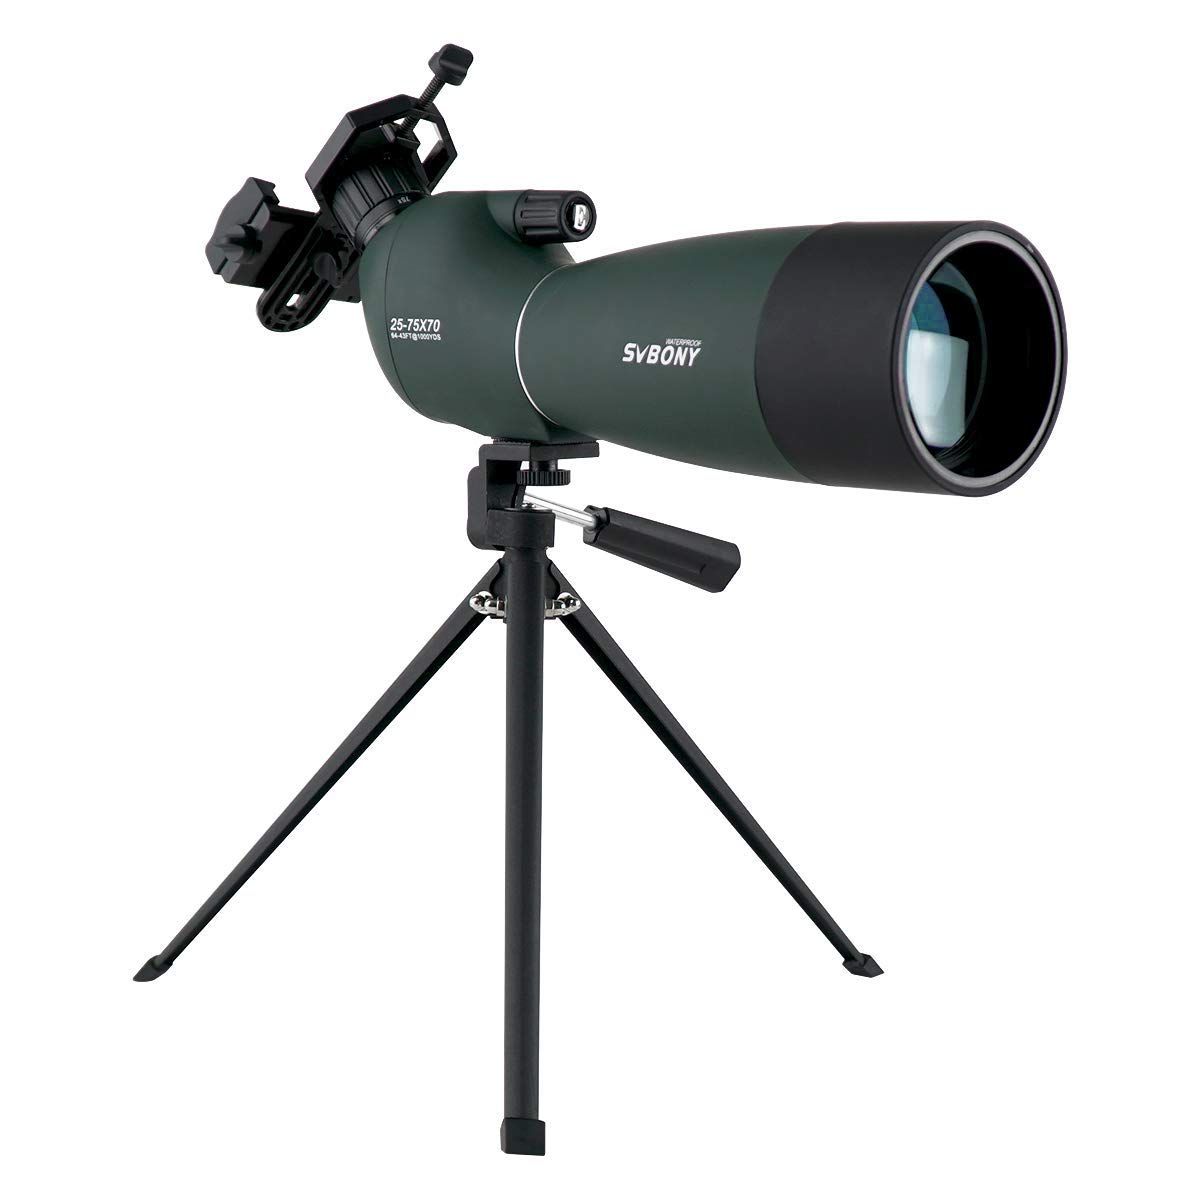 SVBONY SV28 Spotting Scope with Tripod 25-75x70mm Waterproof Angled Bak4 Prism for Target Shooting Bird Watching Hunting by SVBONY